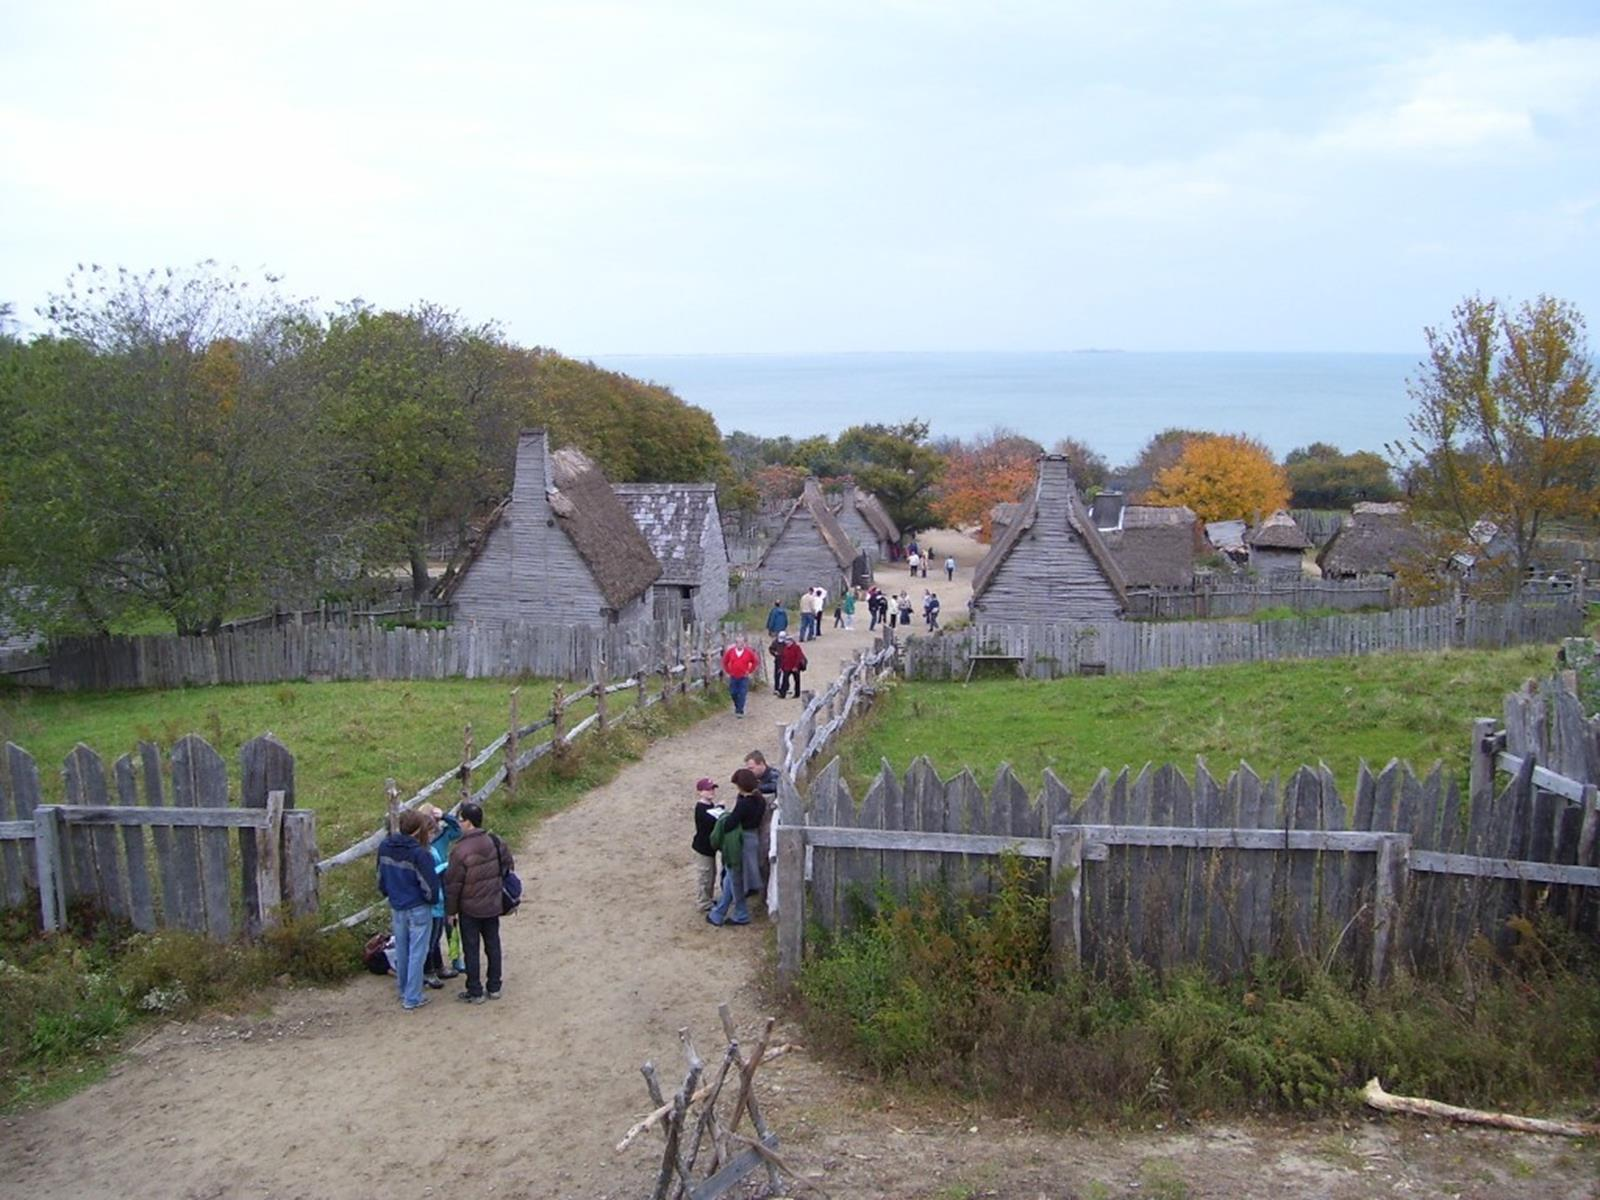 Visitors at Plimoth Plantation. Credit: Swampyank at en.wikipedia